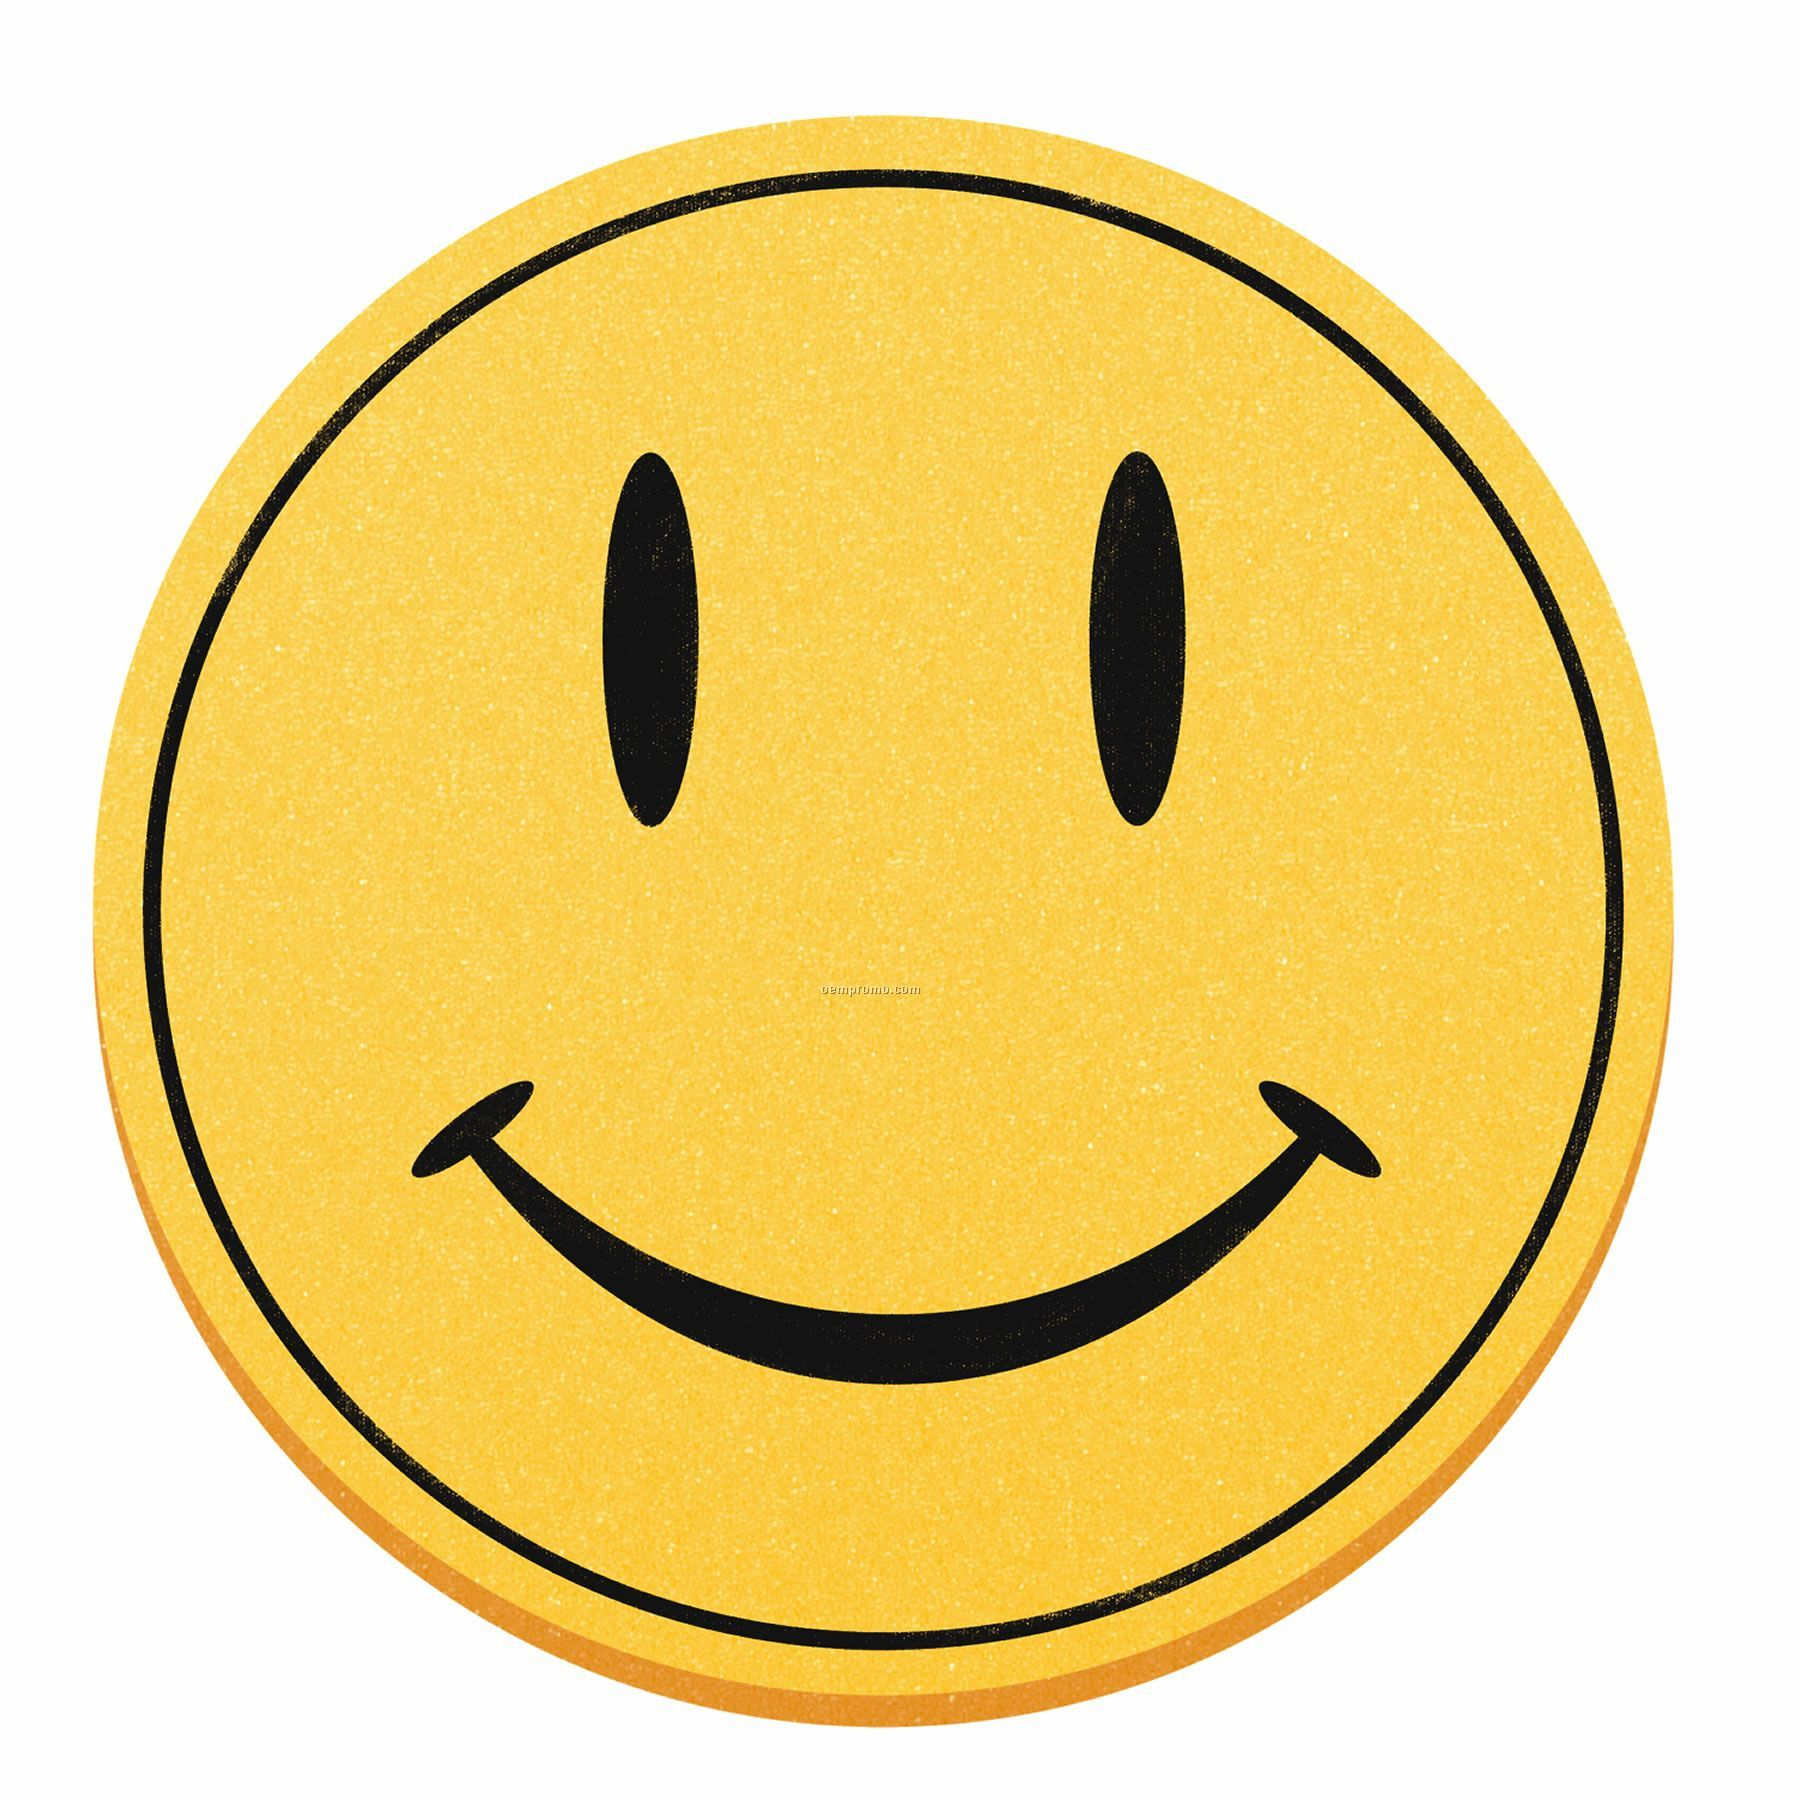 Free Yellow Smiley Face, Download Free Clip Art, Free Clip Art on.